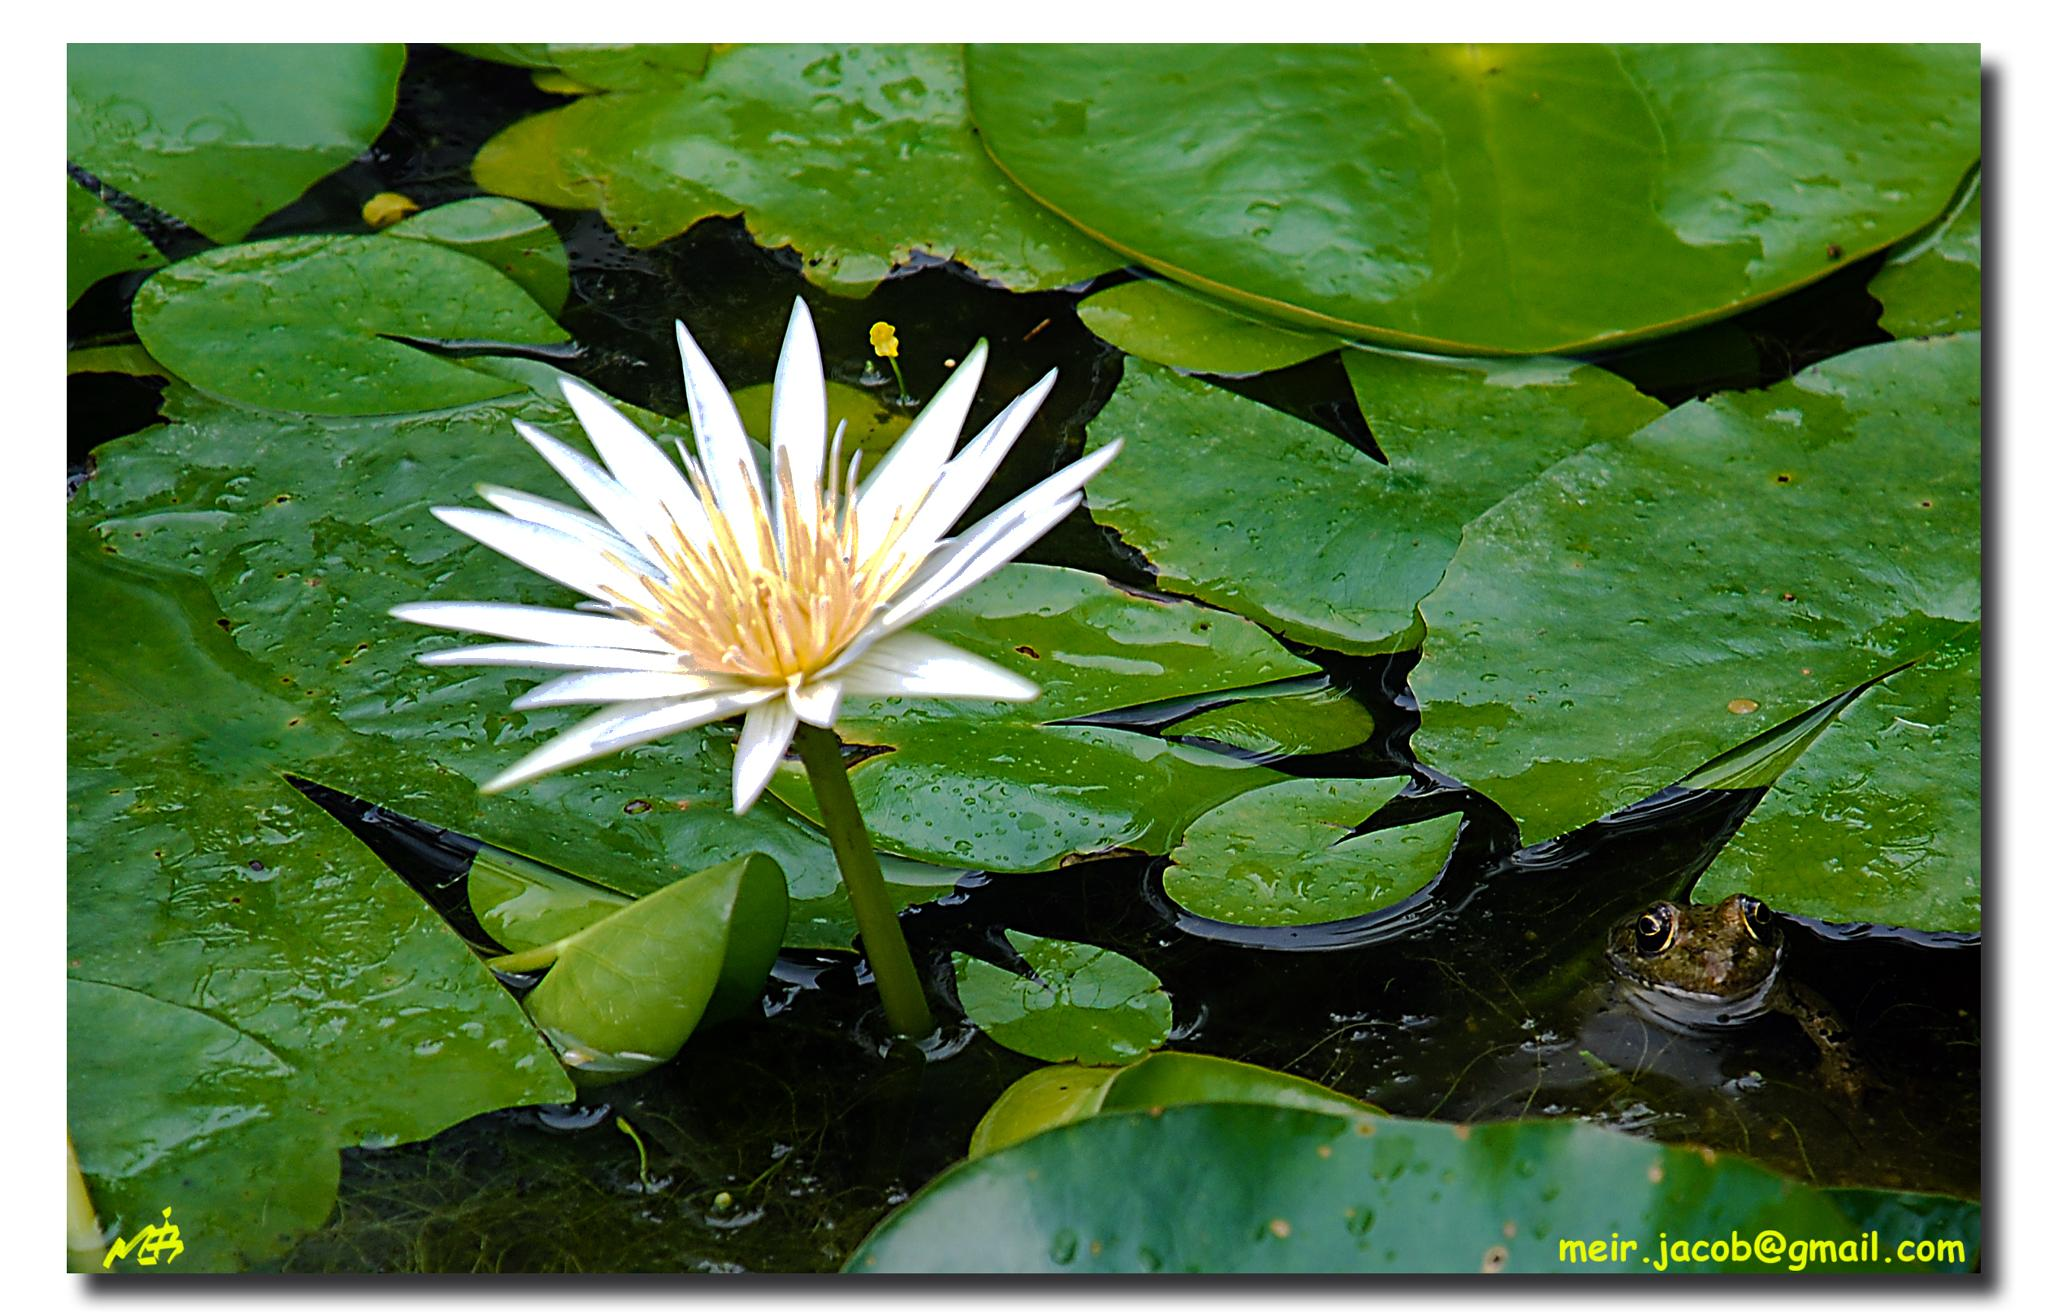 Water Lily and The Prince by Meir Jacob